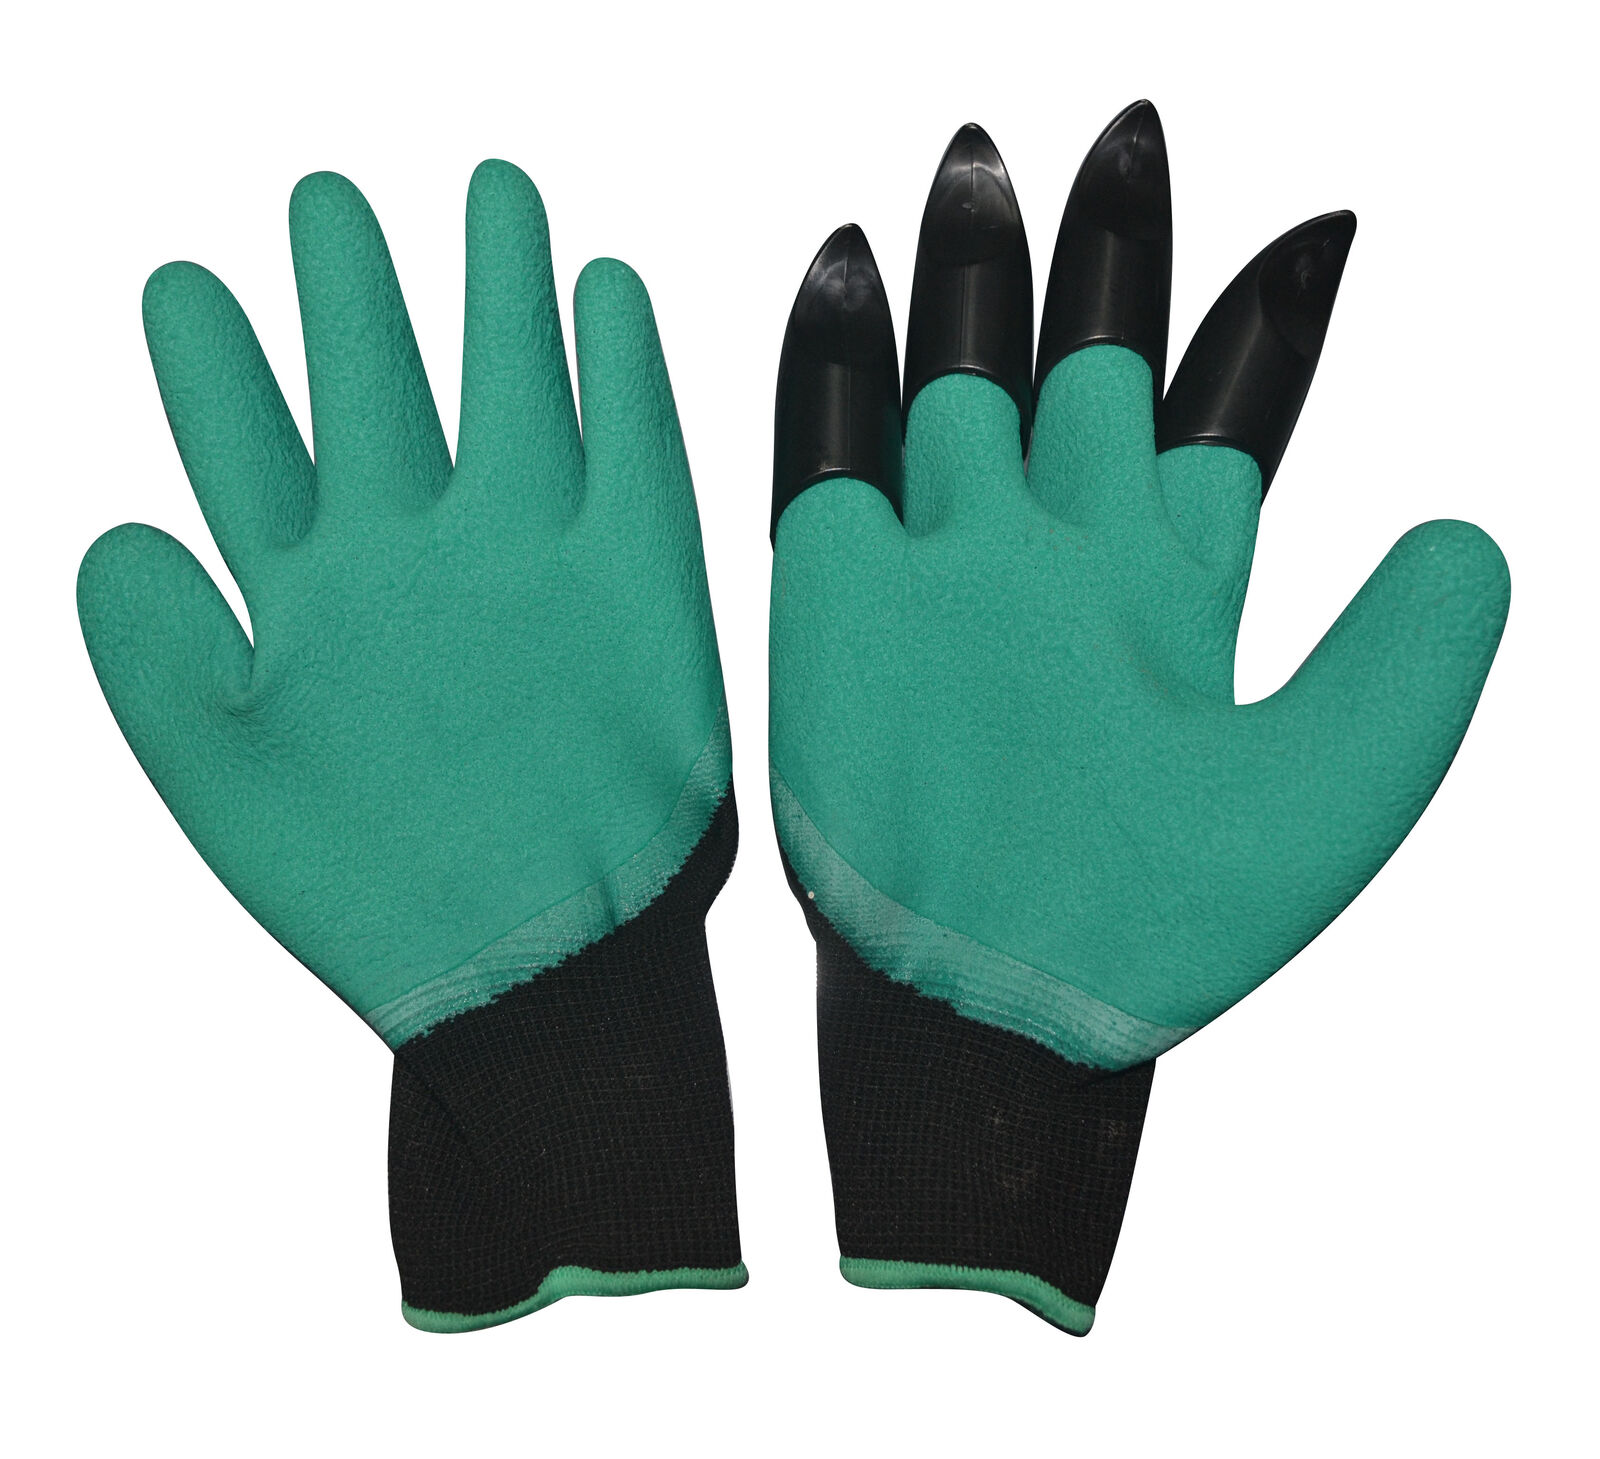 2 Pairs Garden Genie Gloves Abs Latex Claws Quick,easy To Dig Plant Safe Pruning